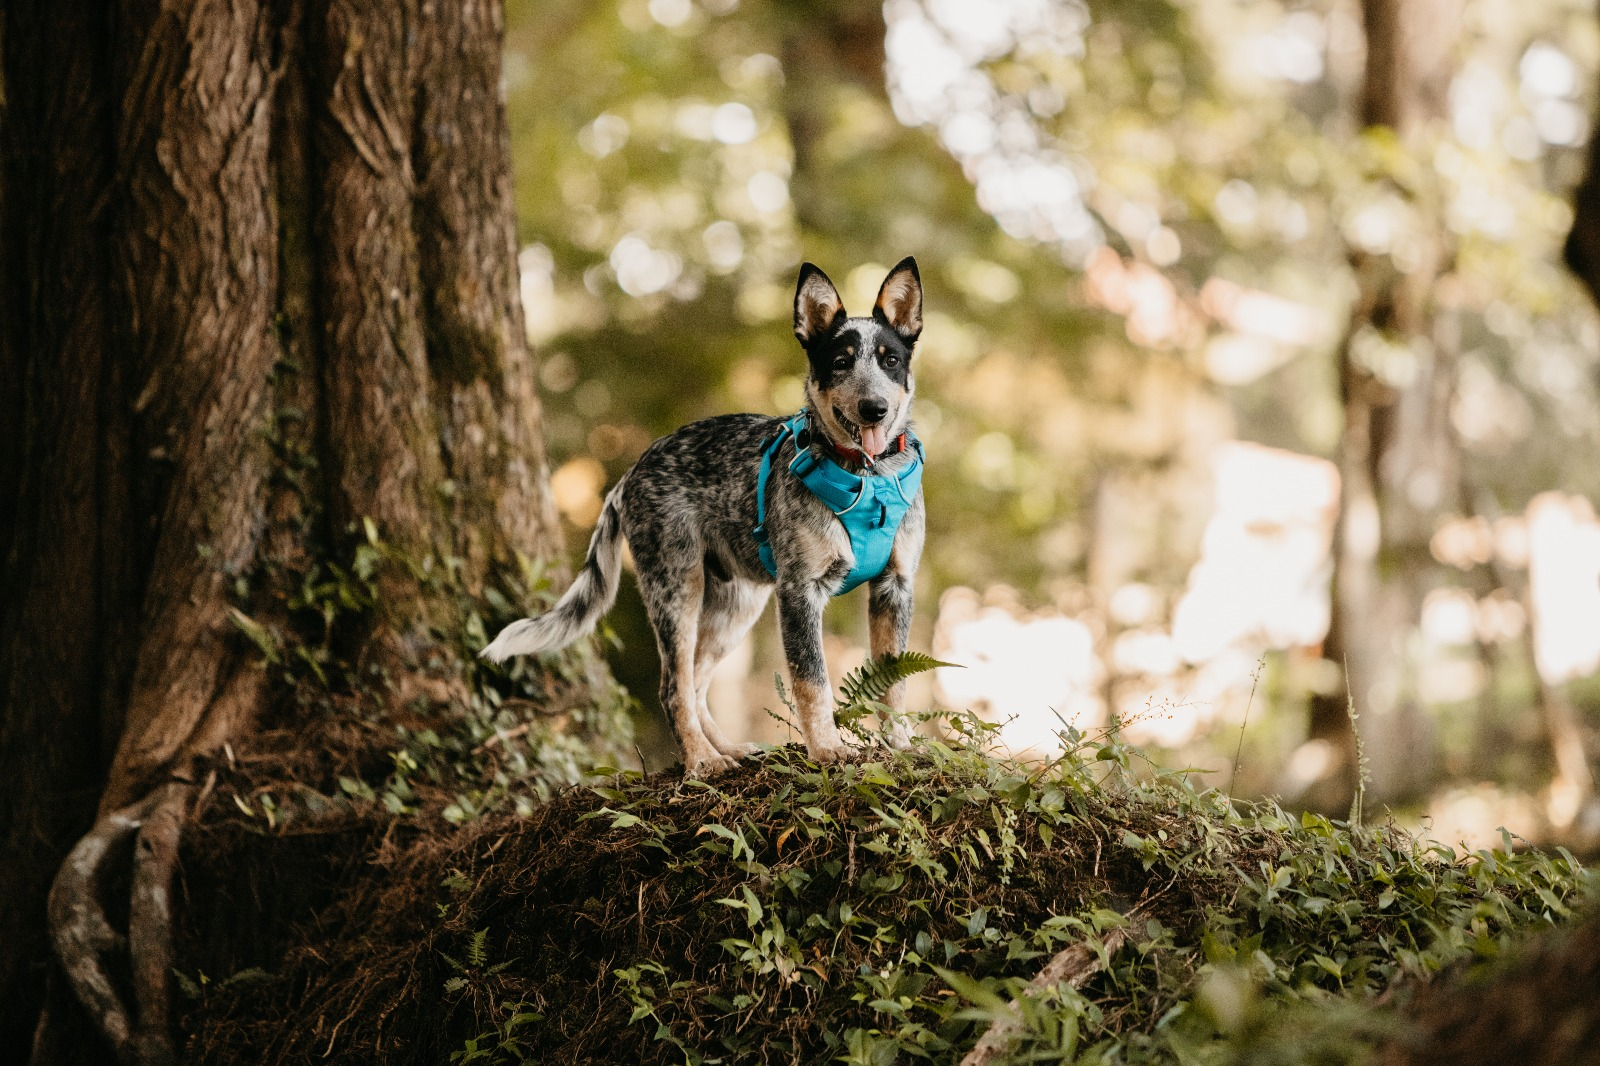 staring dog in woods